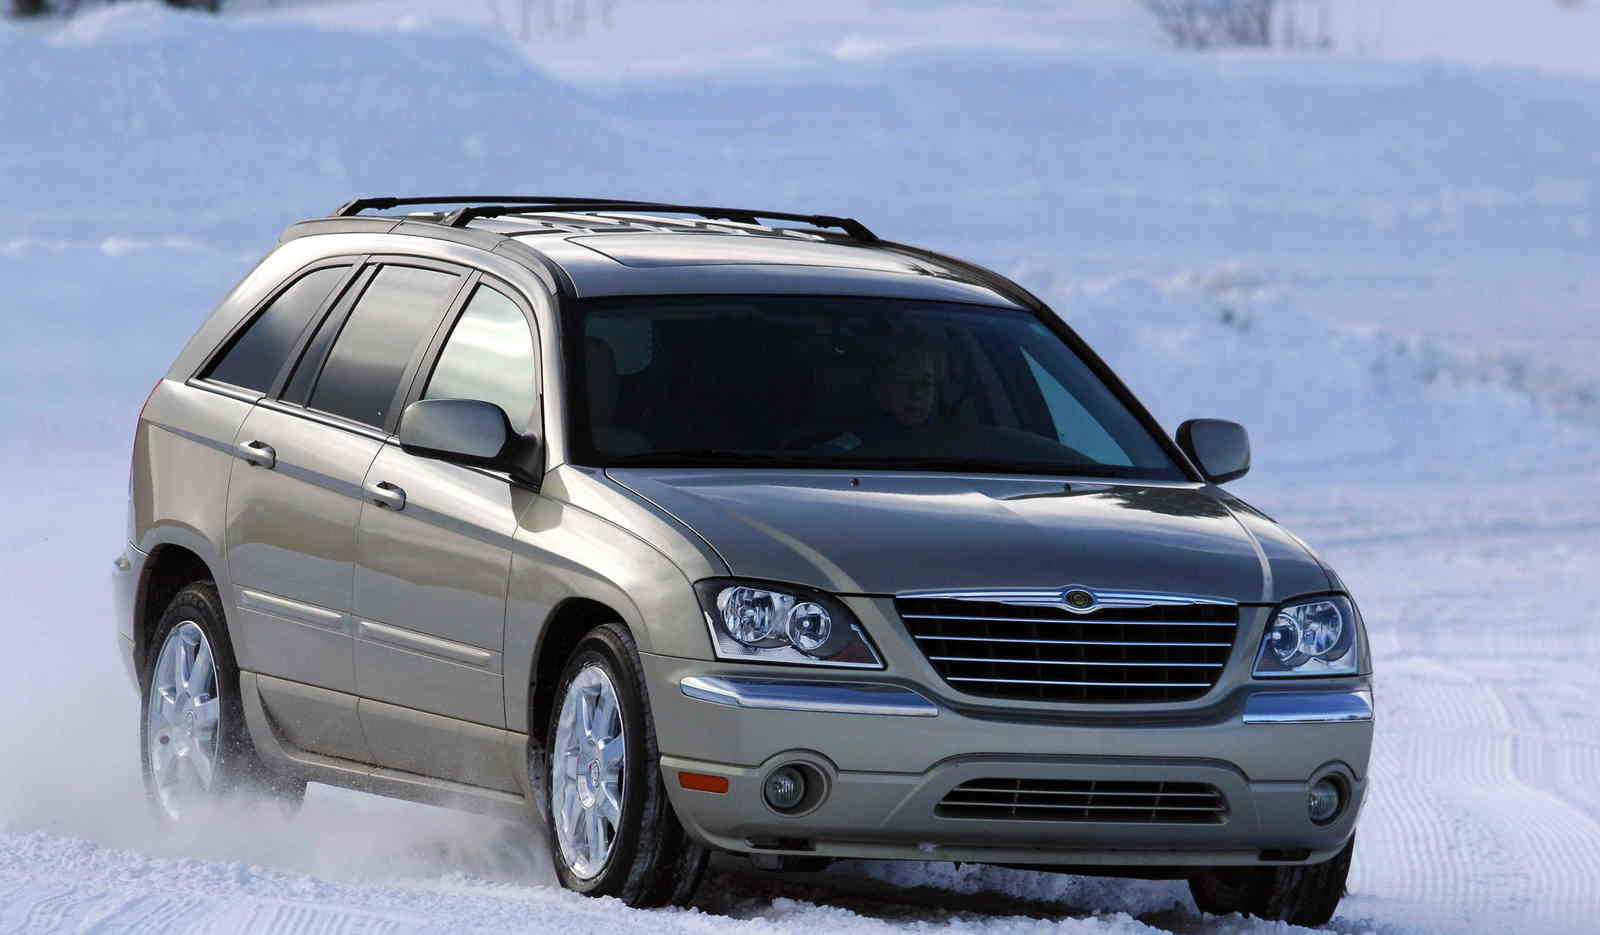 2006 chrysler pacifica picture 45477 car review top speed. Cars Review. Best American Auto & Cars Review